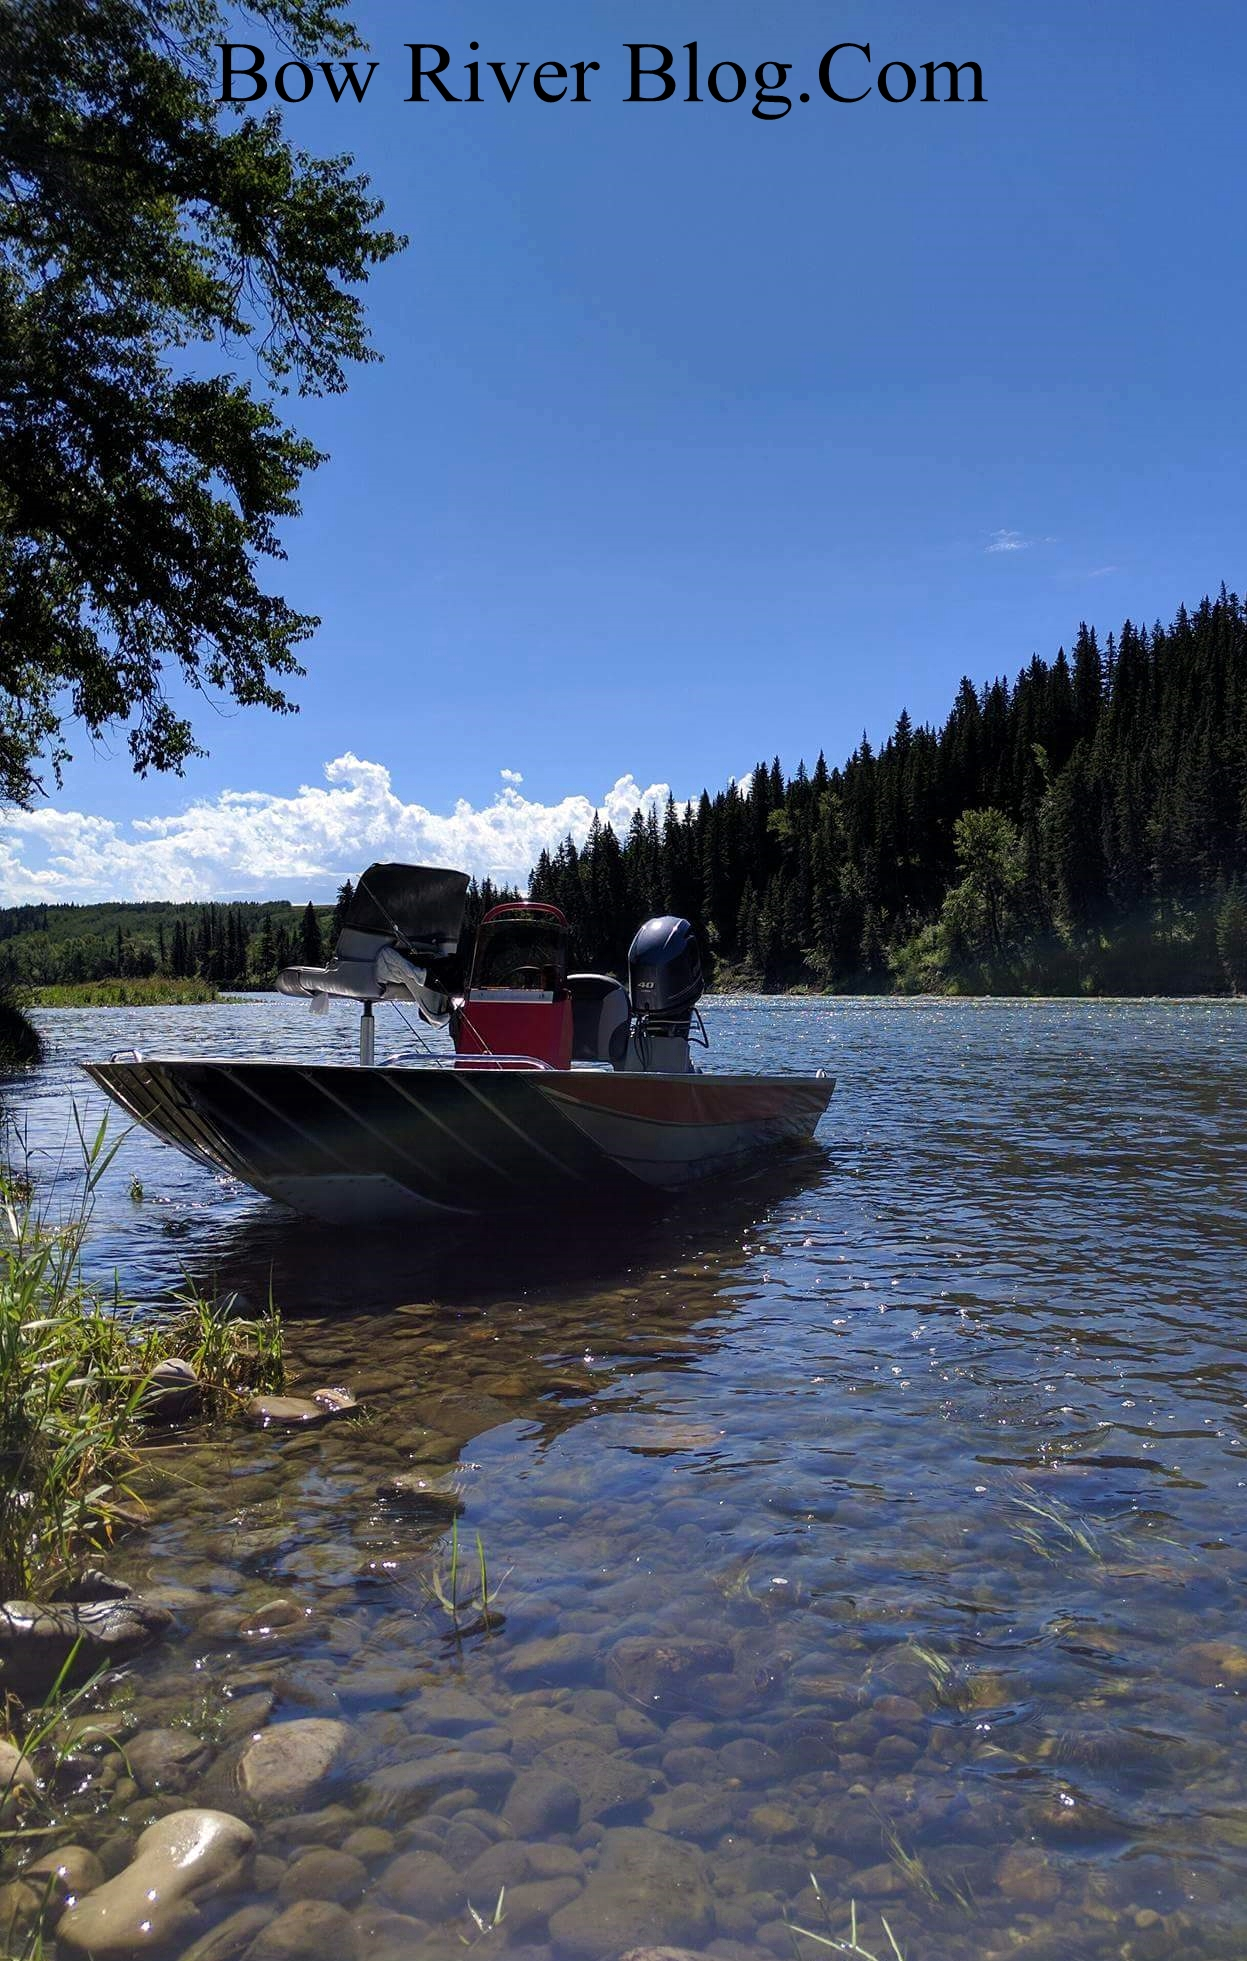 guided-fishing-trips-bow-river